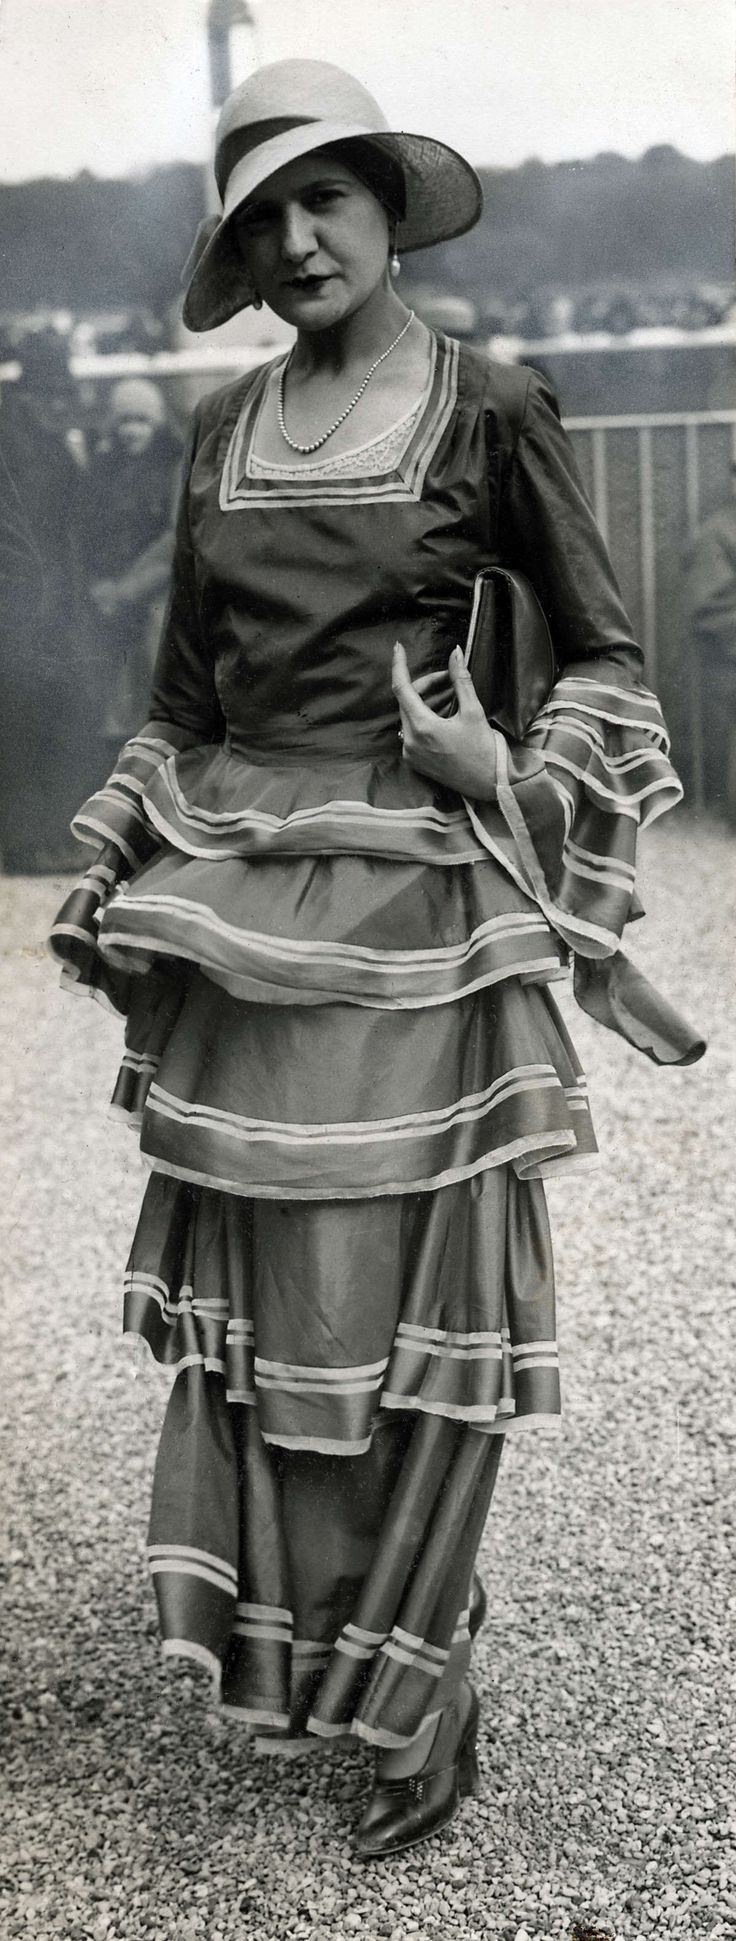 A woman at Longchamp Racecourse in France 1930.